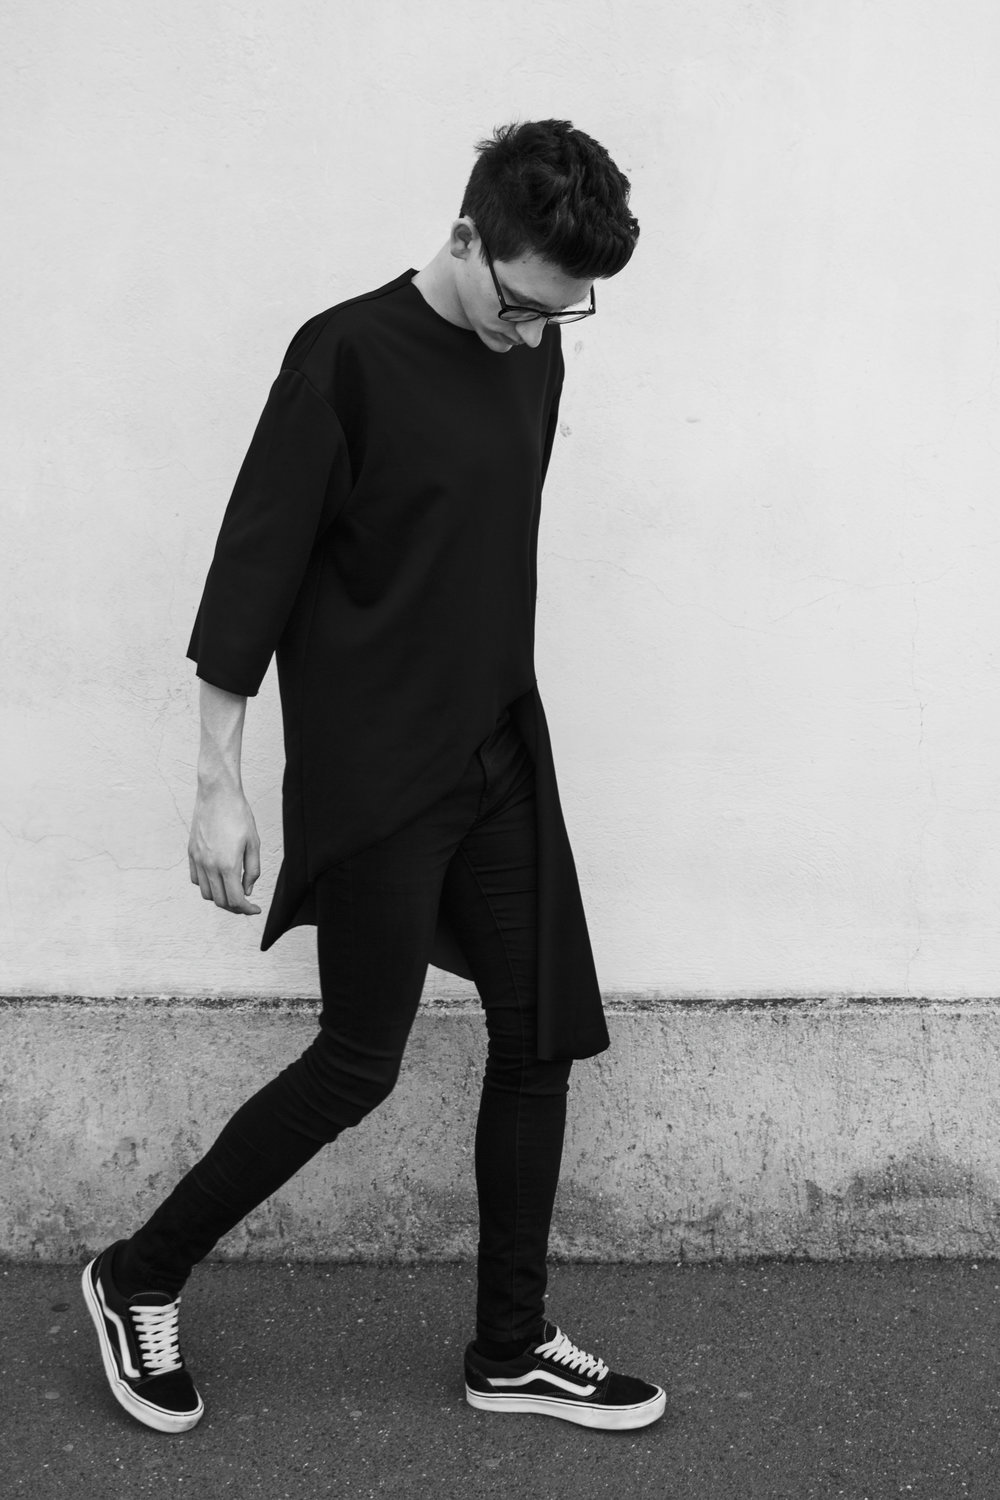 luka-lajic-photography-fashion-mens-style-ivana-janjic-croatian-designer (8).jpg